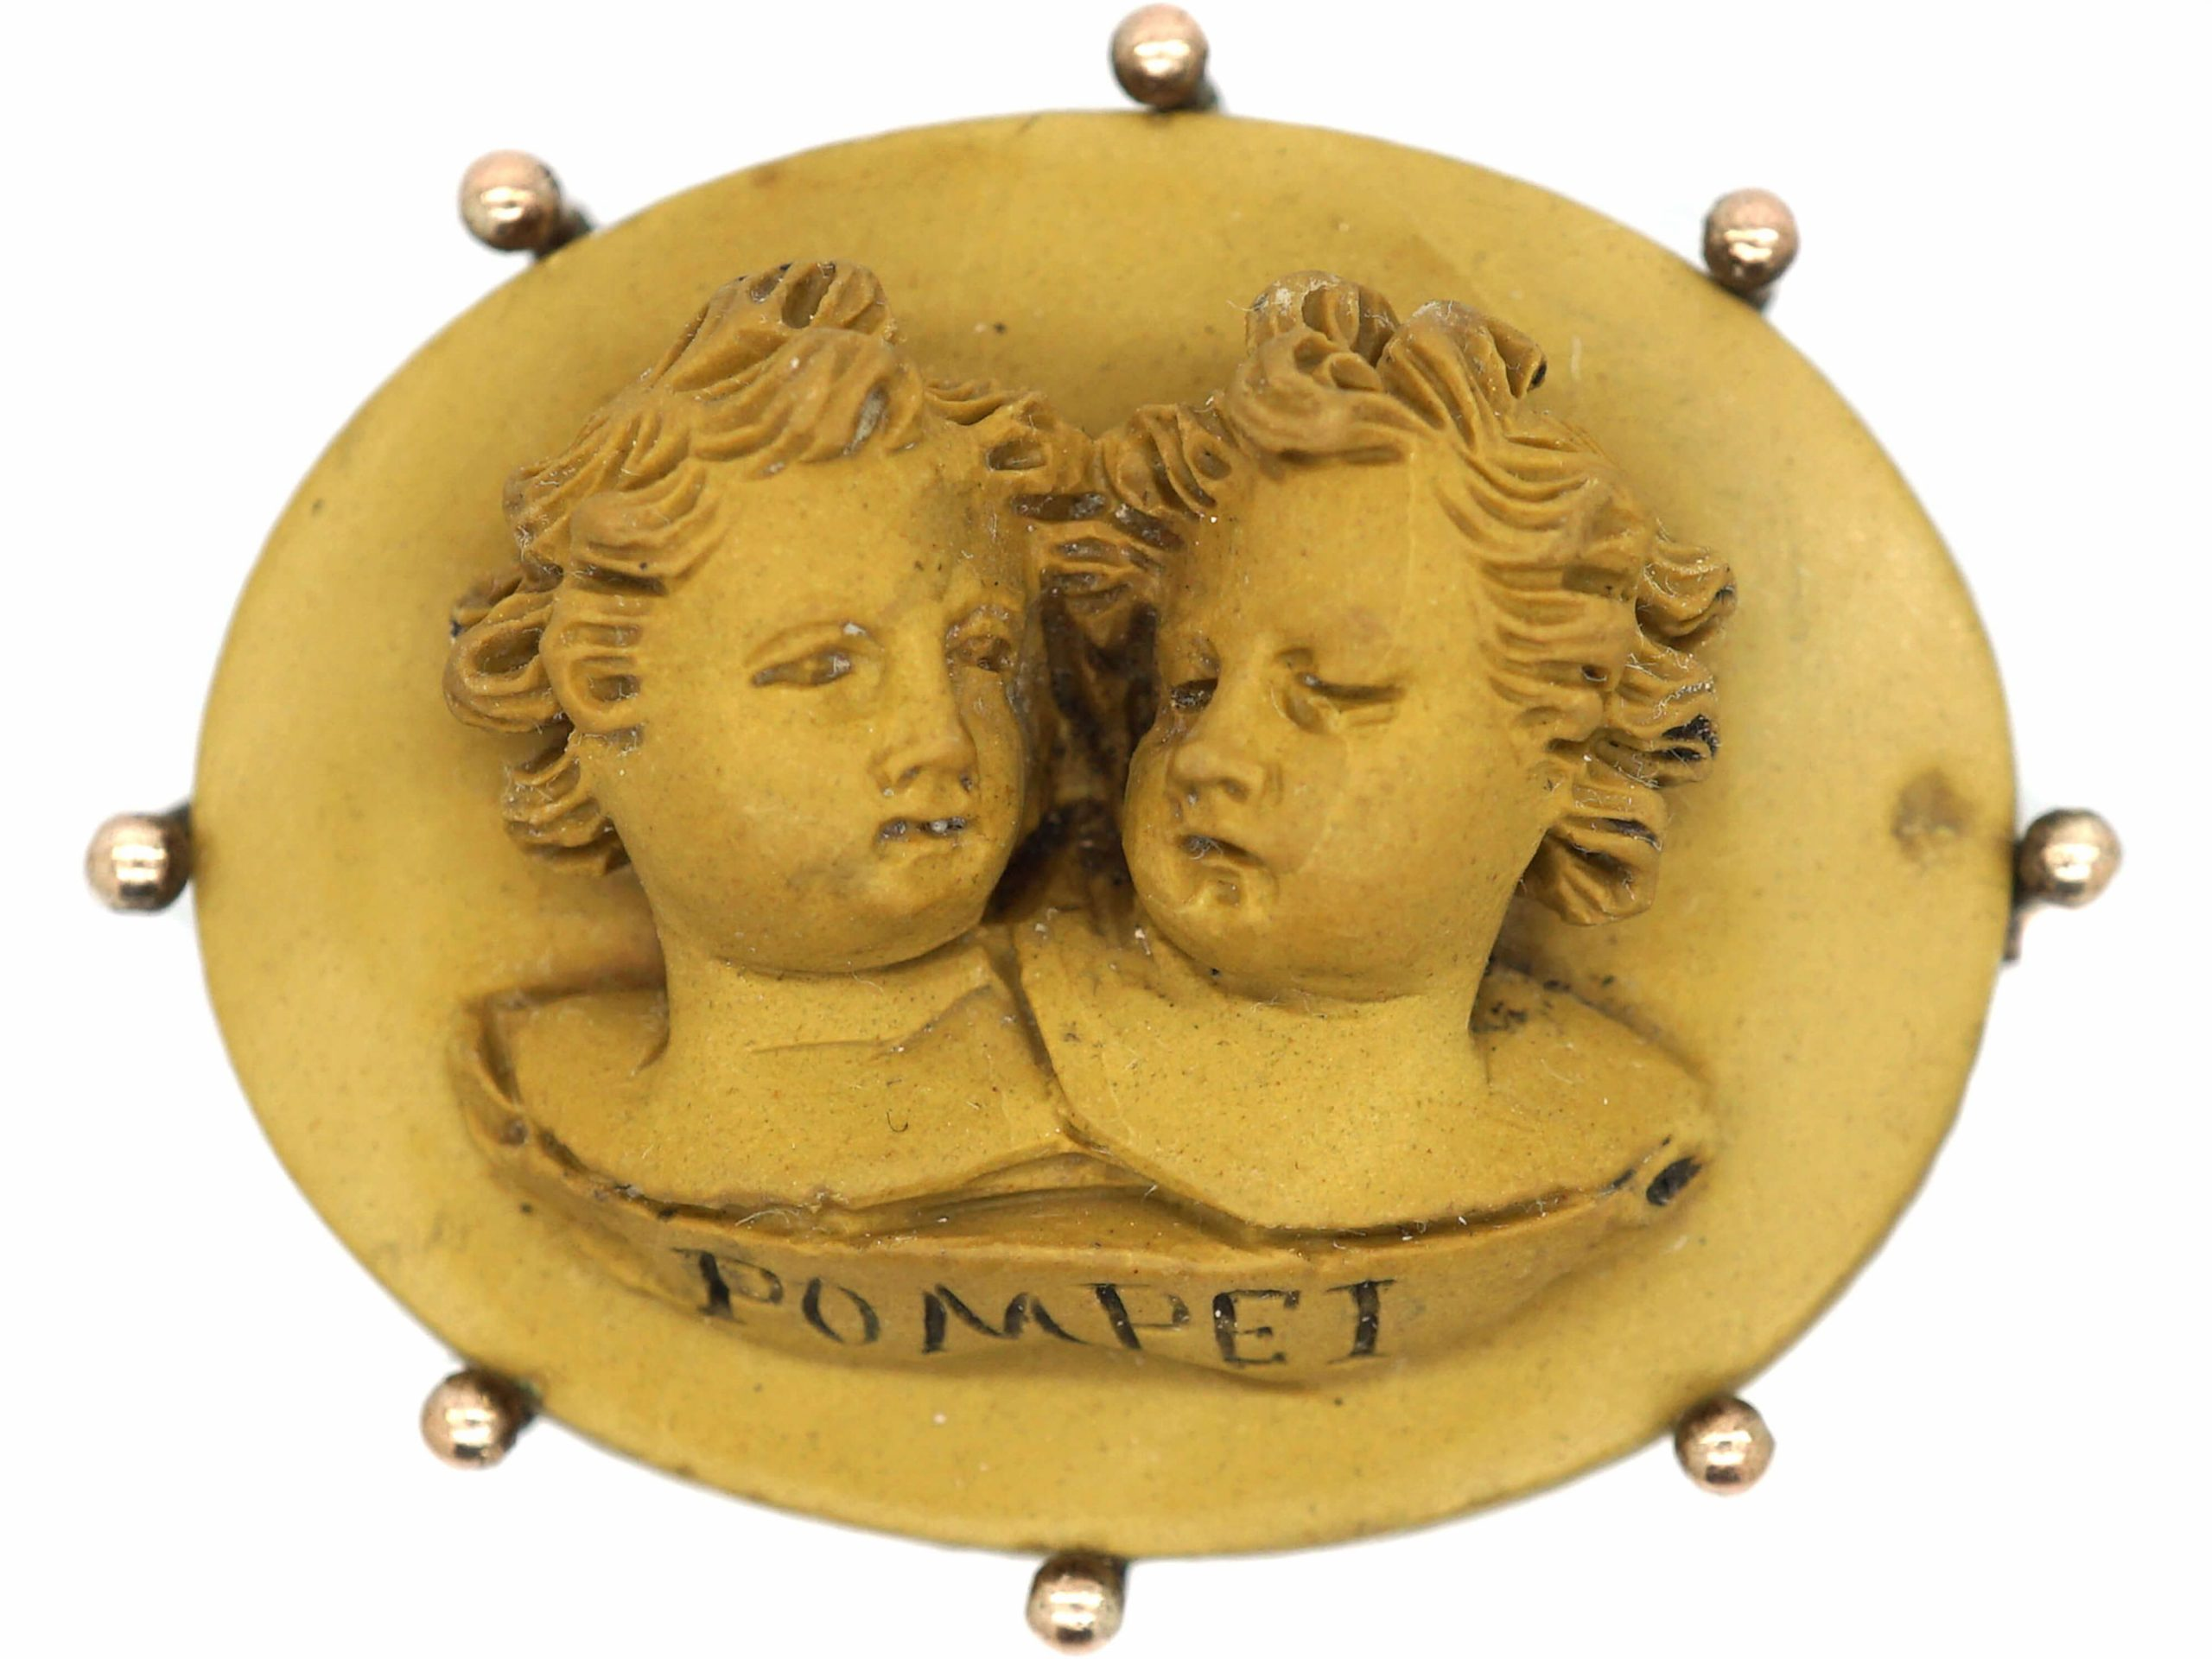 Grand Tour Brooch of Two Children Carved in Lava Stone